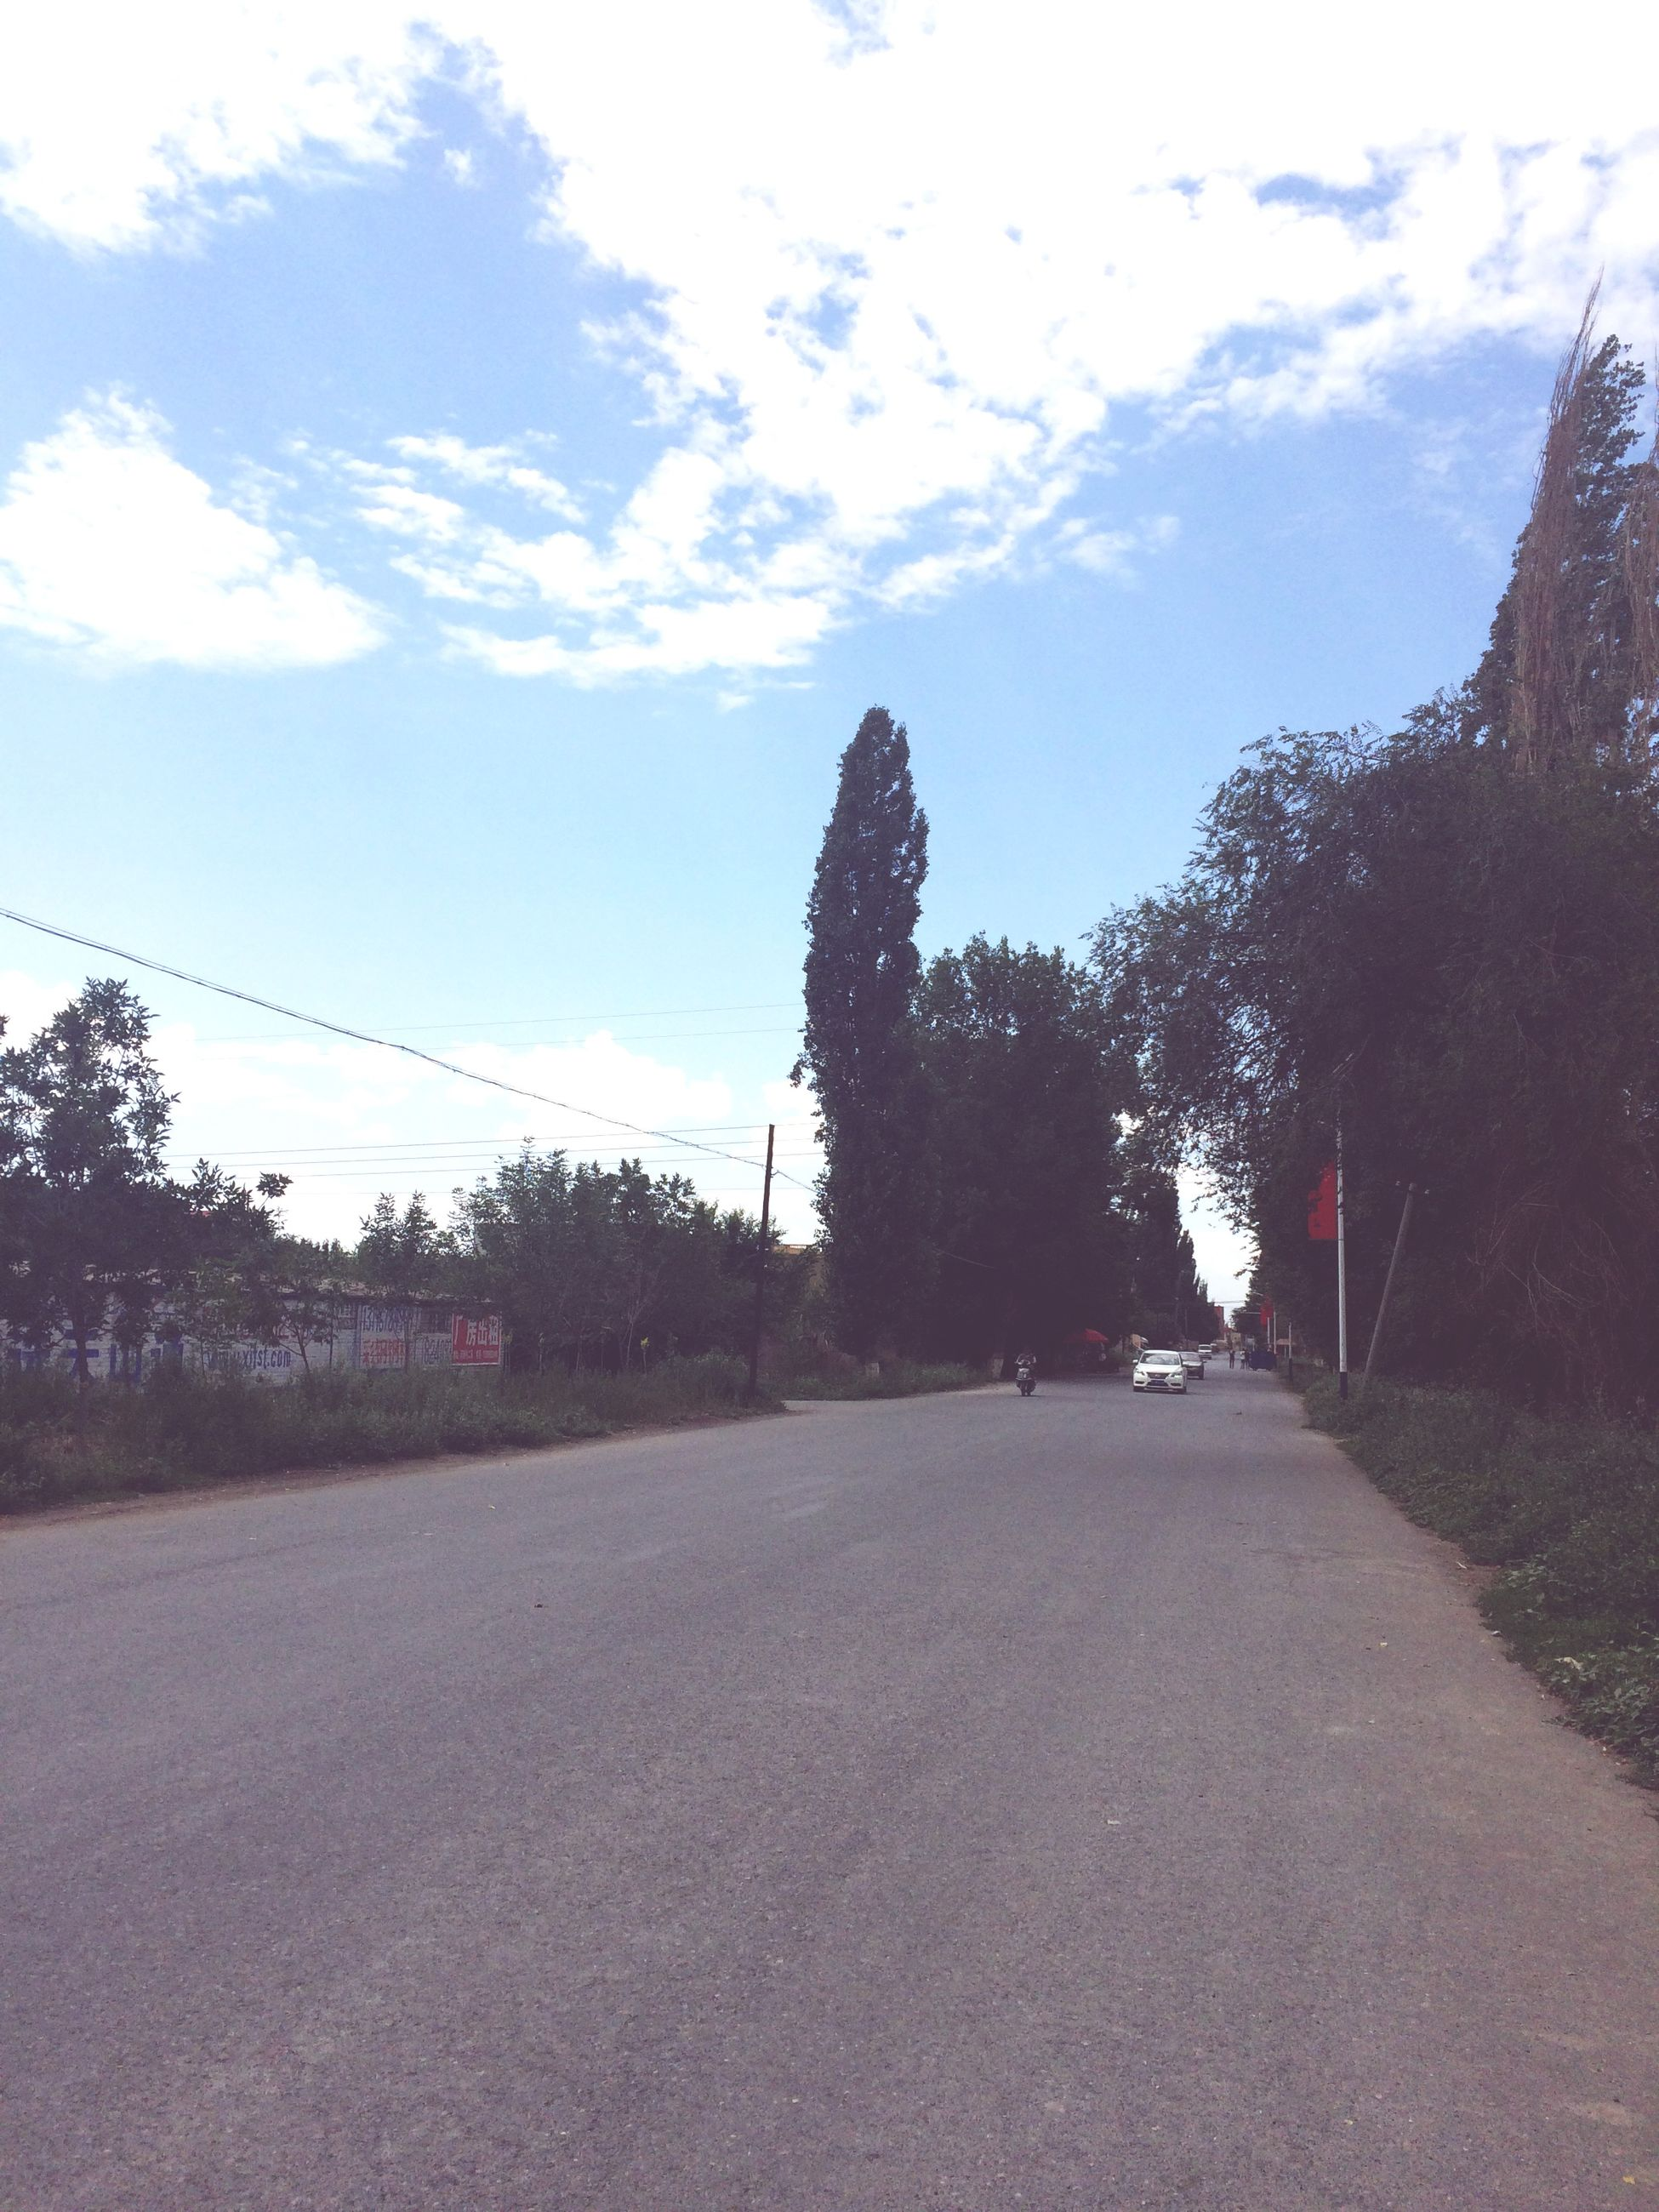 tree, sky, the way forward, road, transportation, diminishing perspective, cloud - sky, street, tranquility, cloud, nature, vanishing point, day, growth, tranquil scene, outdoors, empty, built structure, sunlight, no people